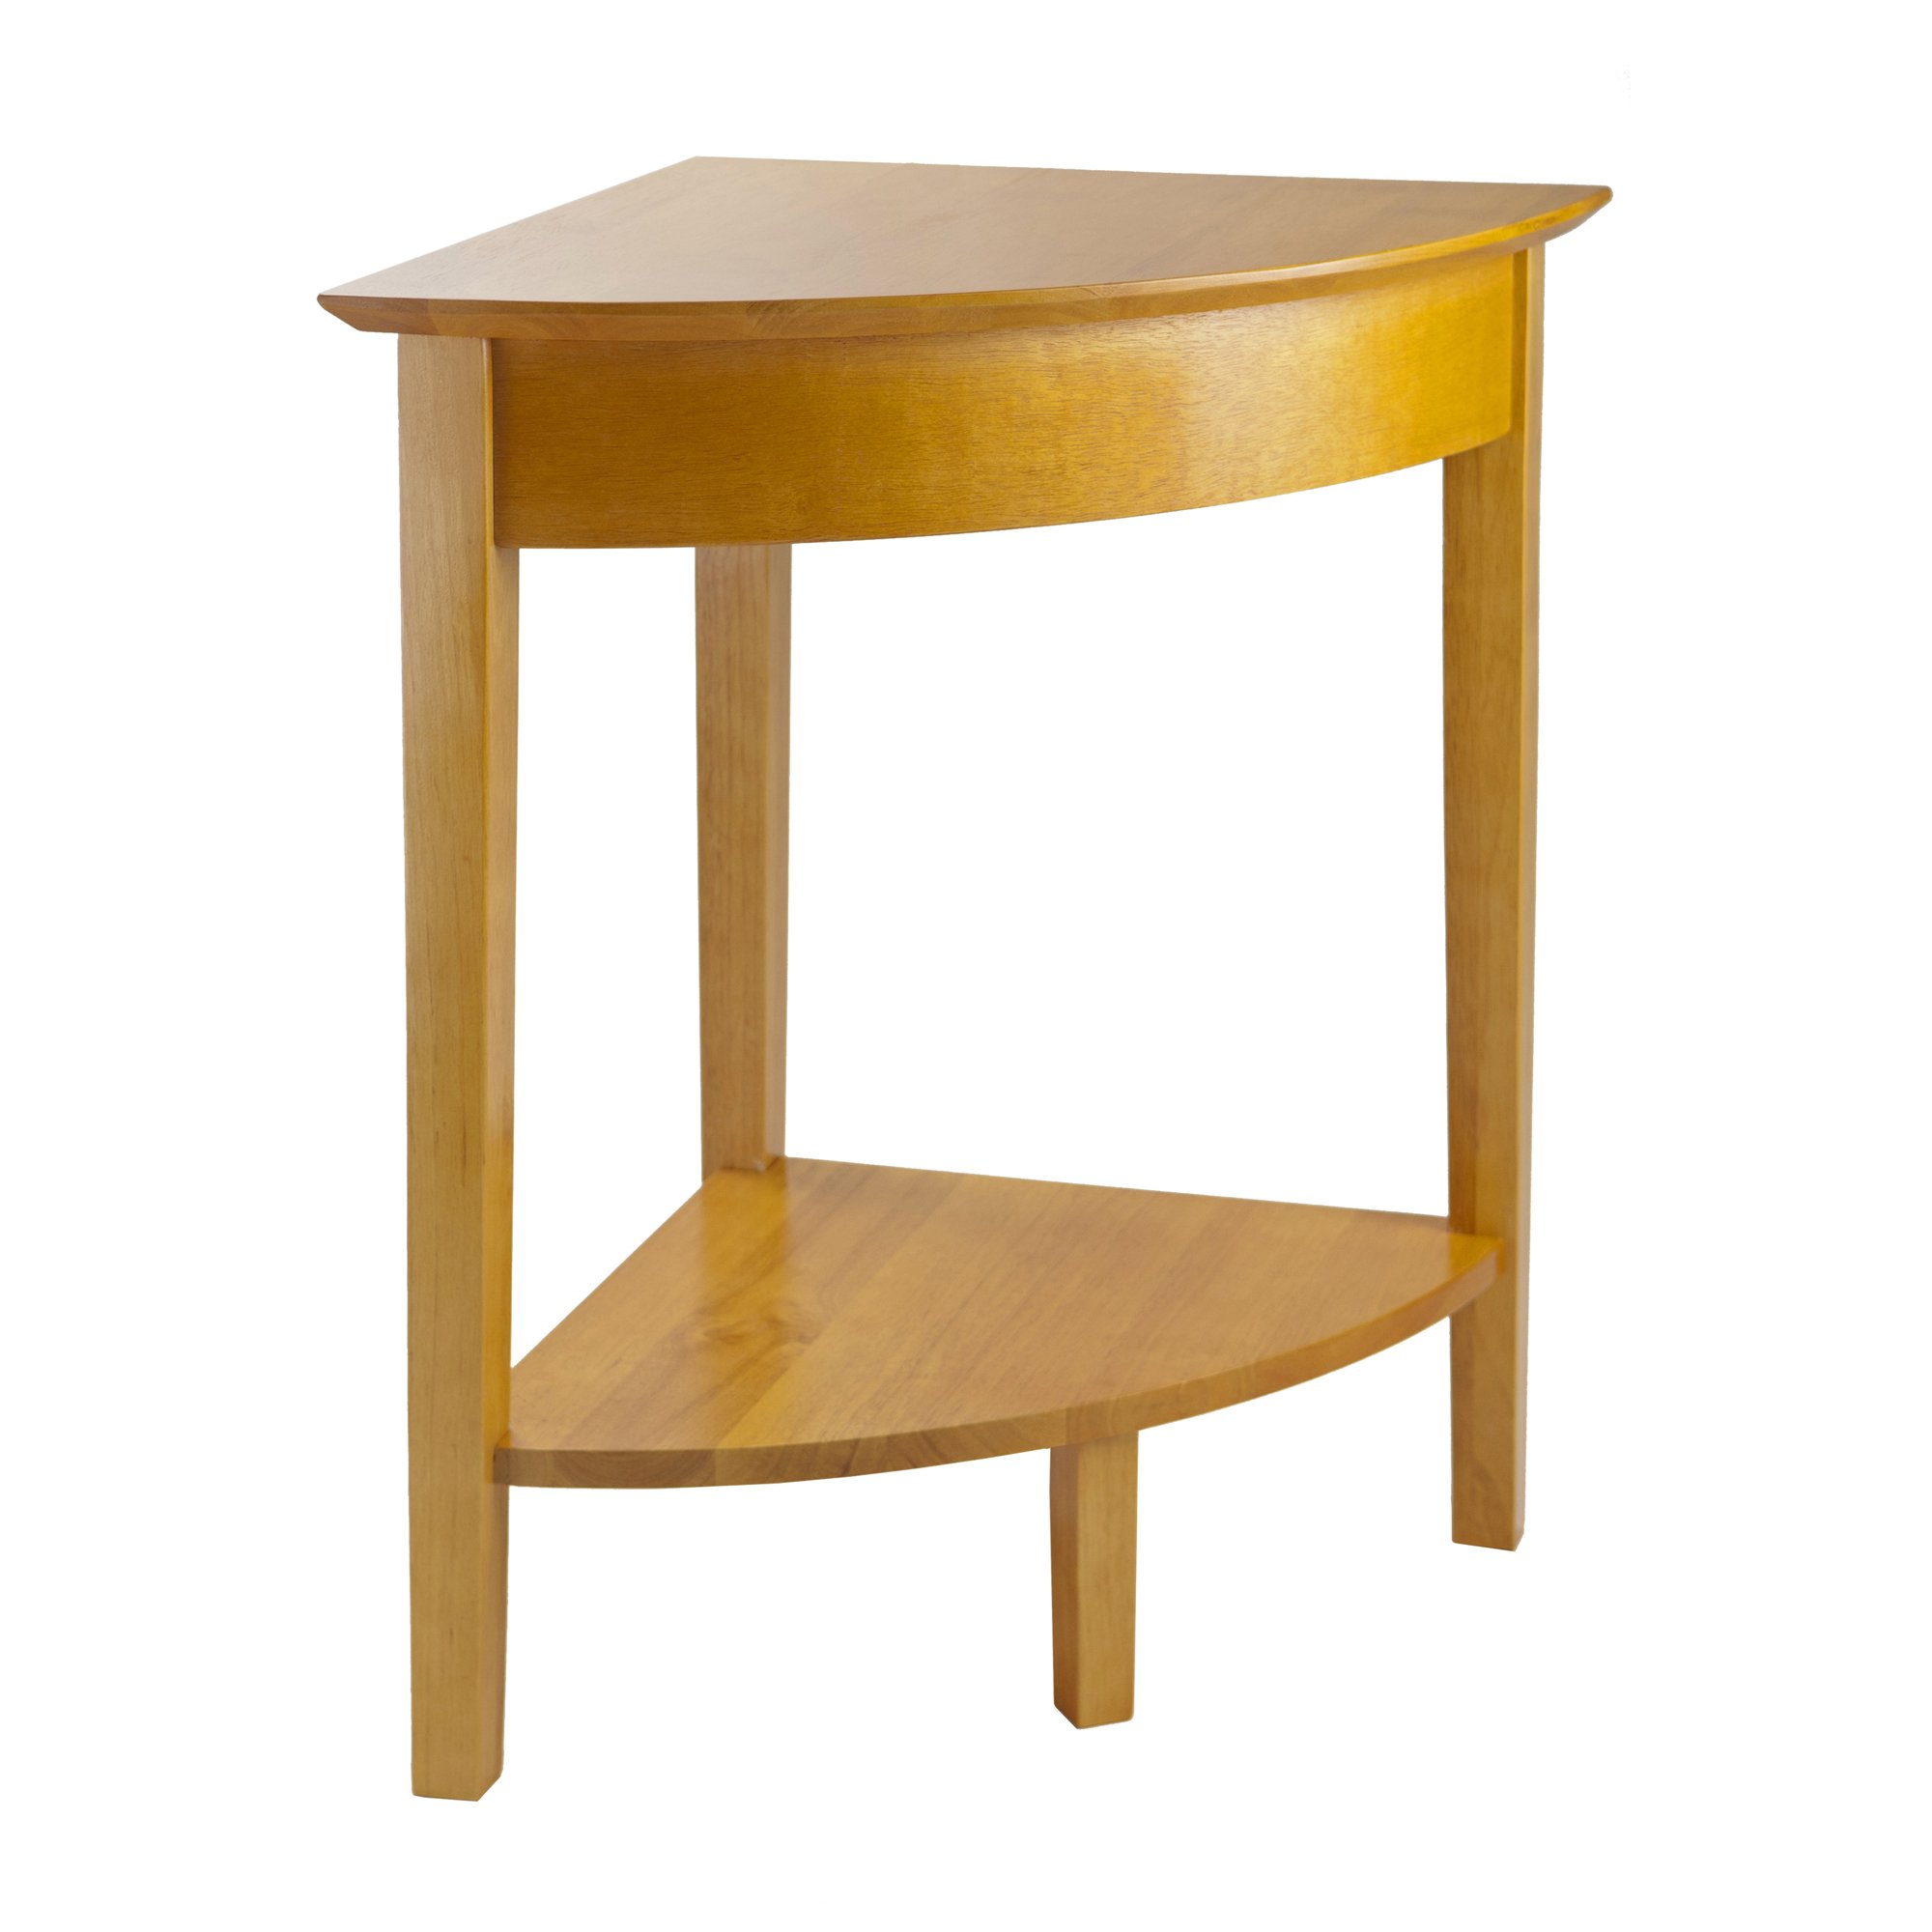 Winsome Wood Corner Desk with Shelf, Honey by Winsome Wood (Image #1)